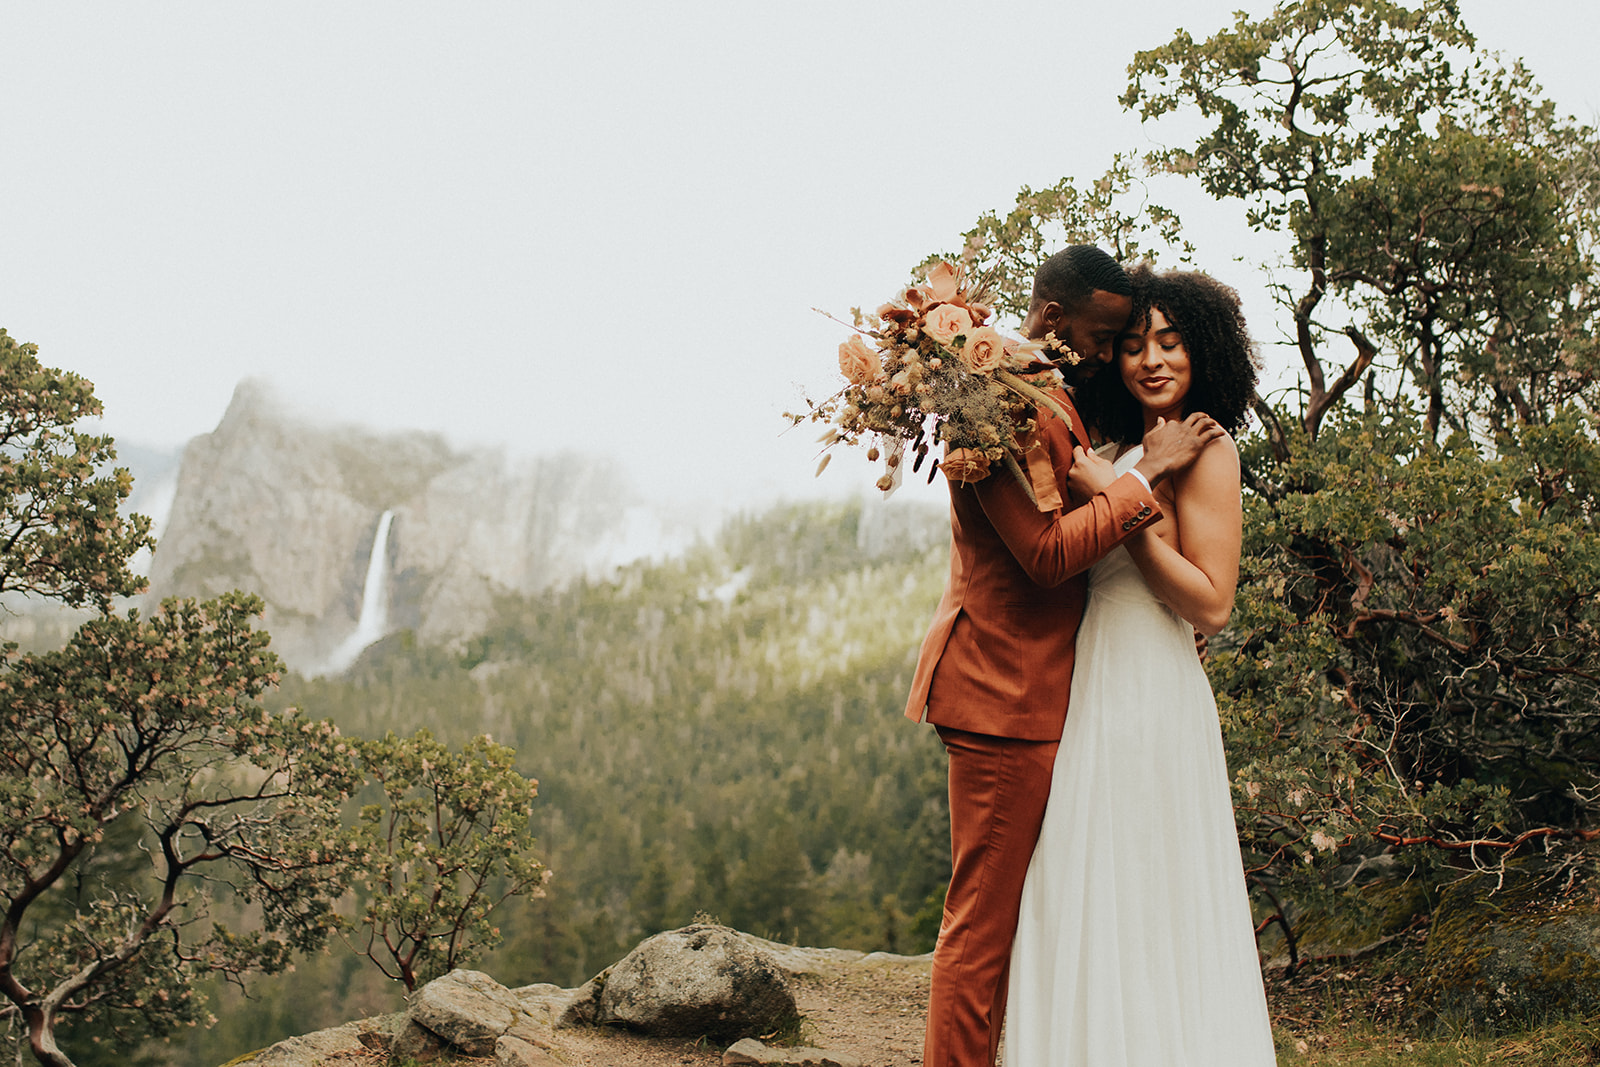 Yosemite_Elopement_Hannah_Alena_Photo_Portland_Wedding_Photographer-81.jpg